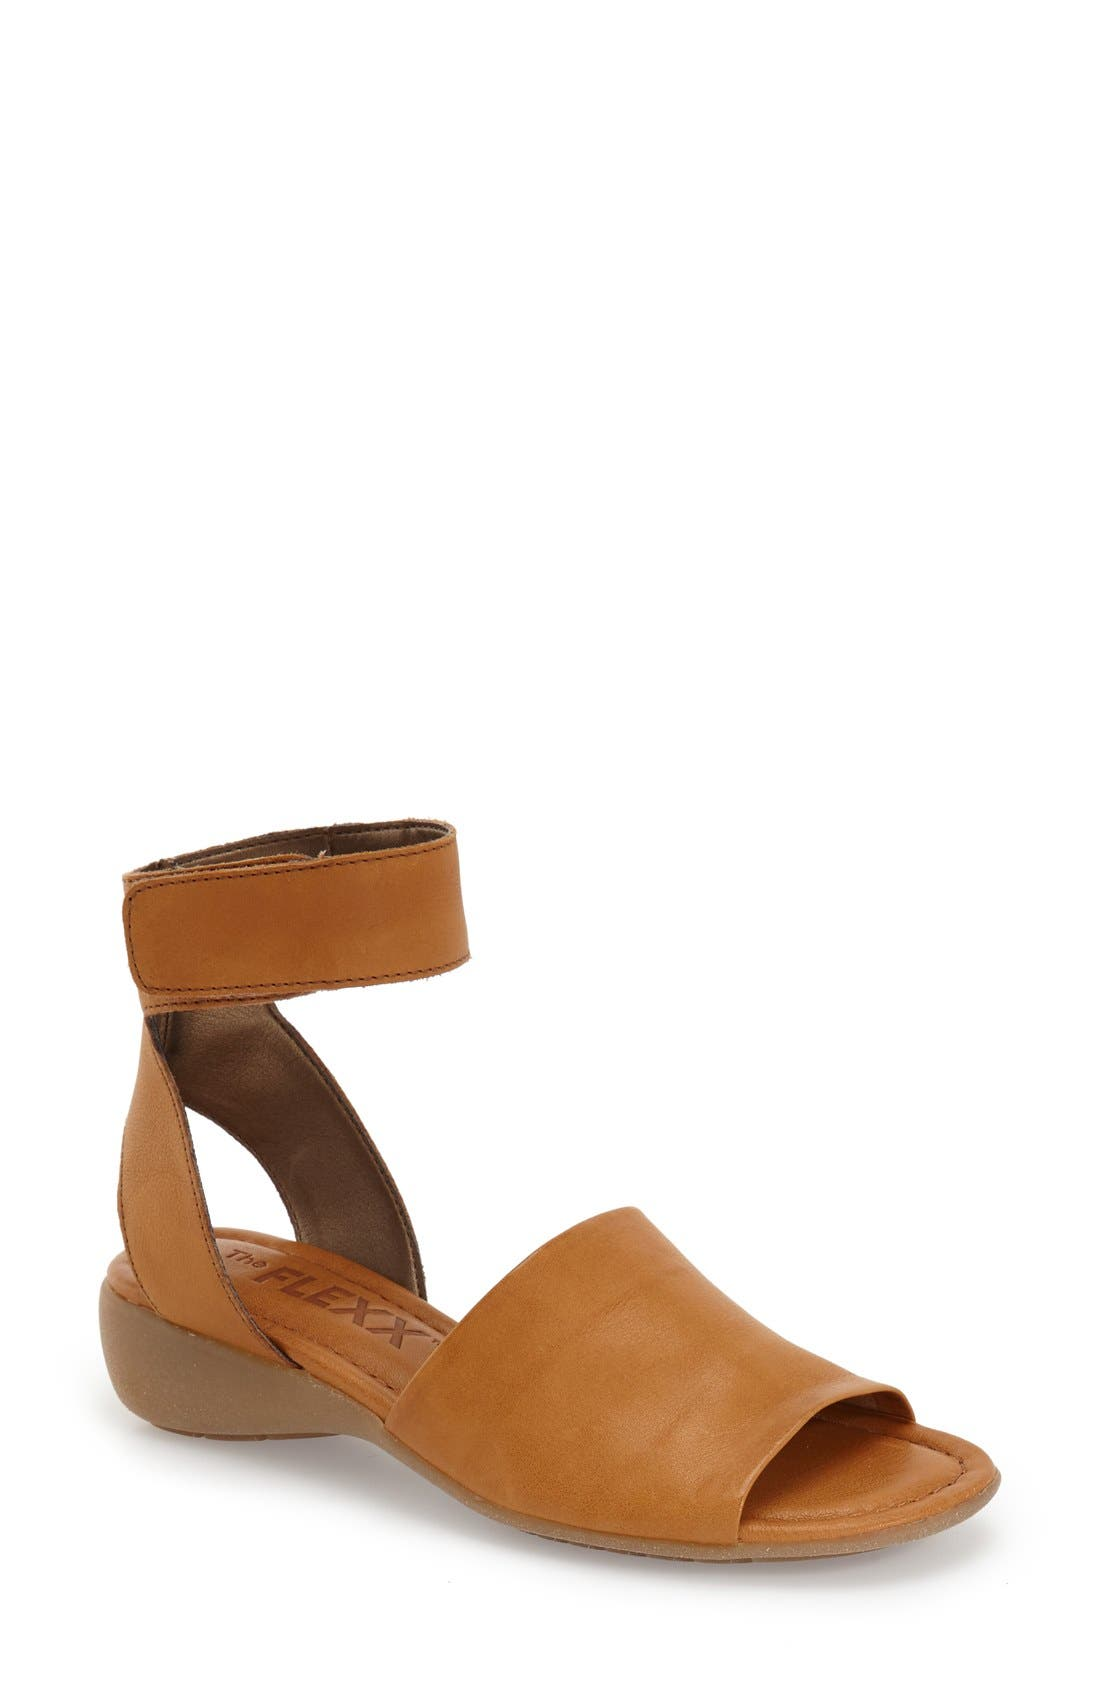 'Beglad' Leather Ankle Strap Sandal,                             Main thumbnail 1, color,                             Virginia Brown Leather